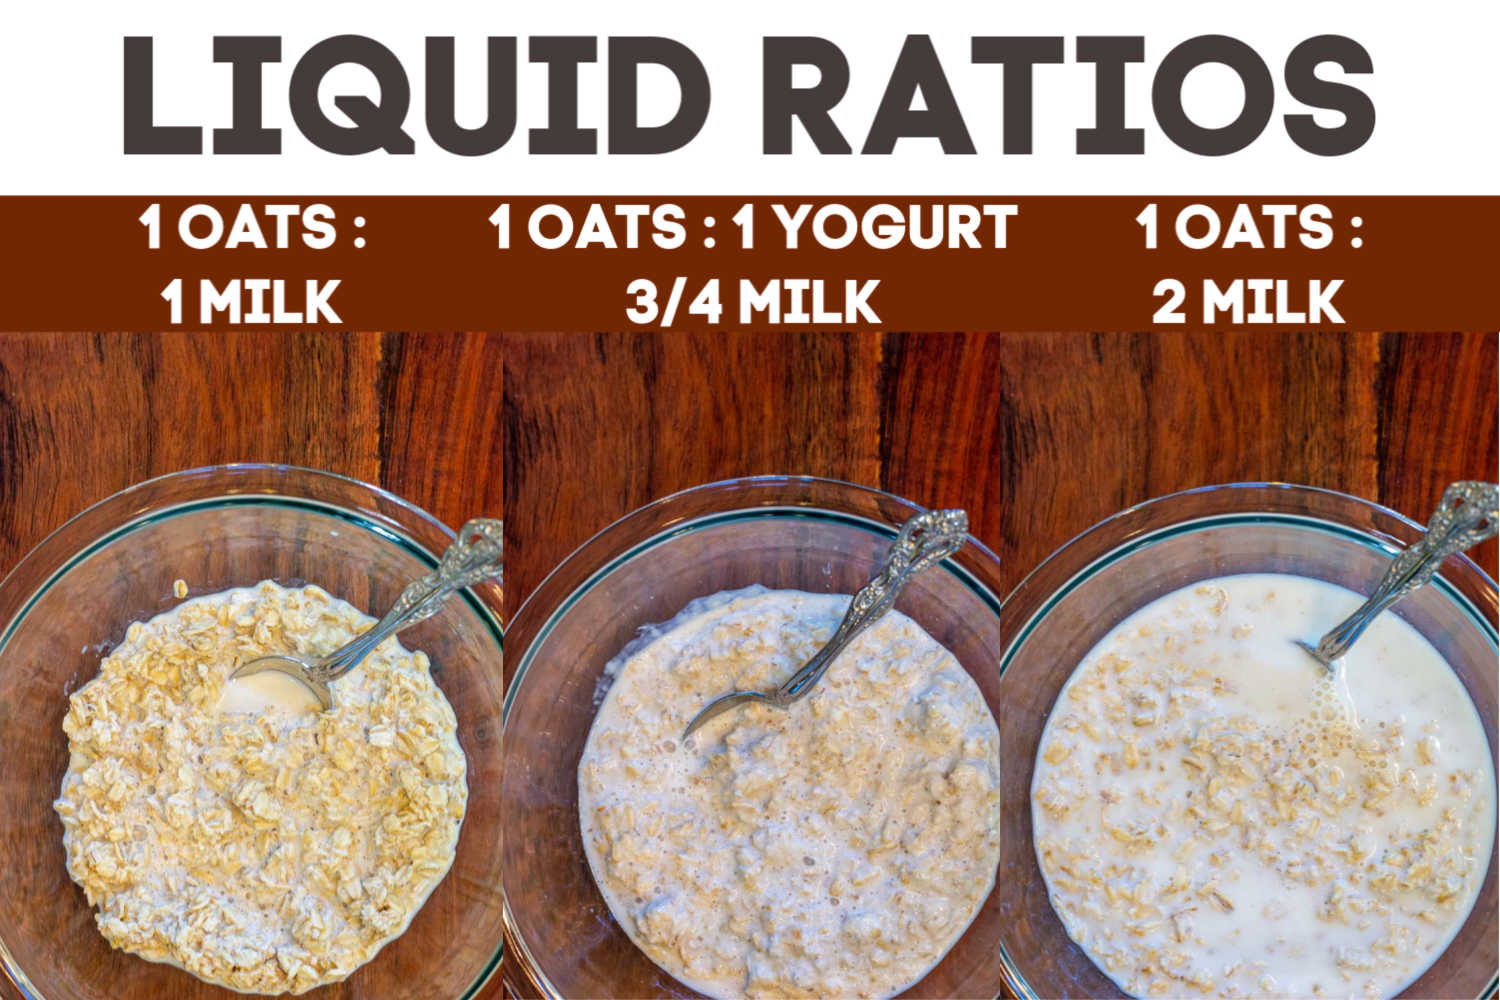 Various ratios of liquid to oats and the resulting consistencies